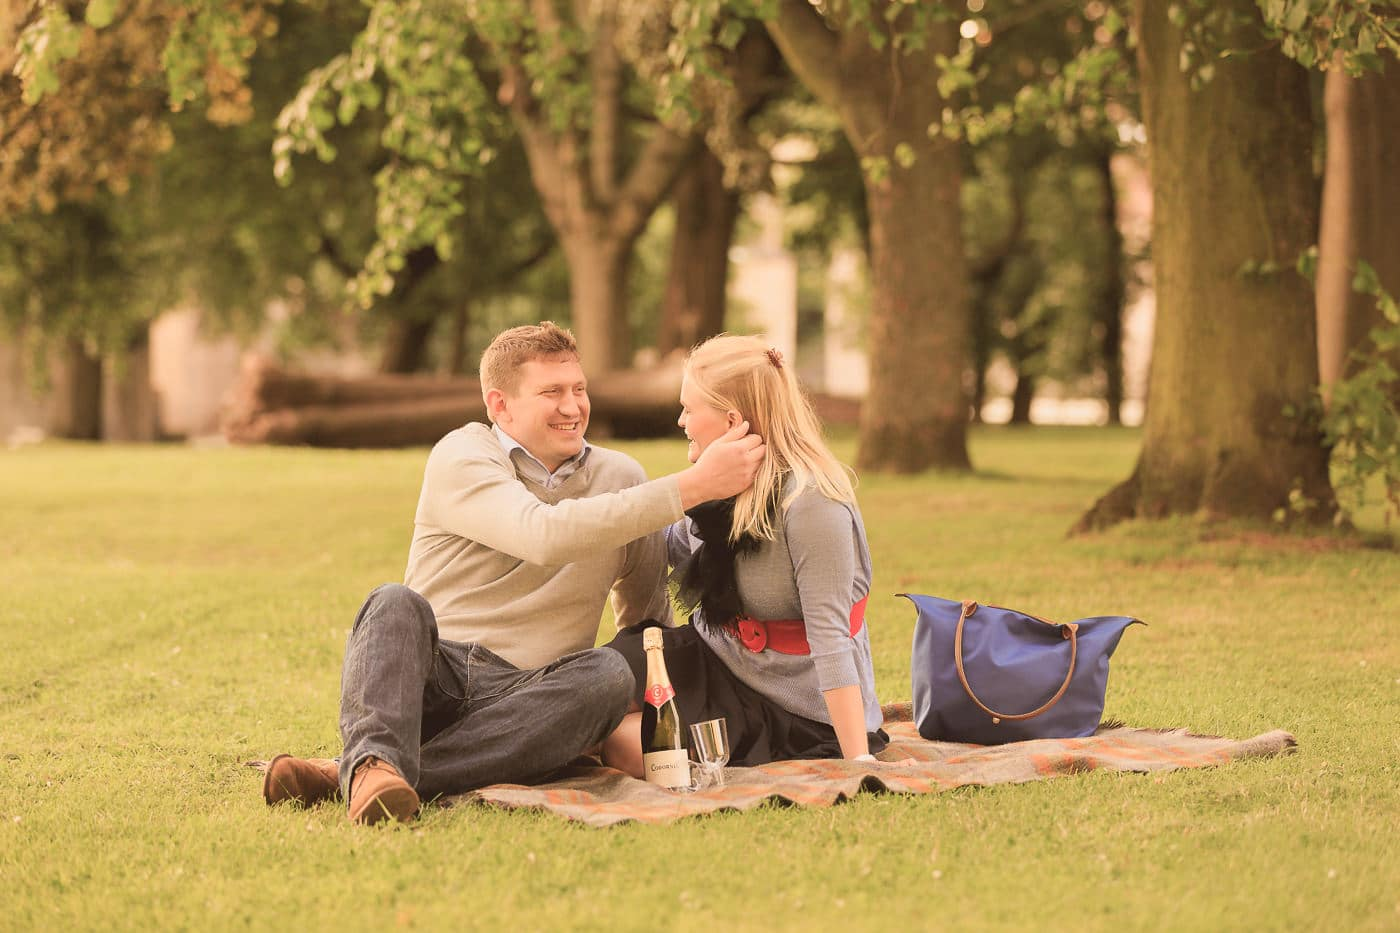 Romantic picnic in Holyrood Park